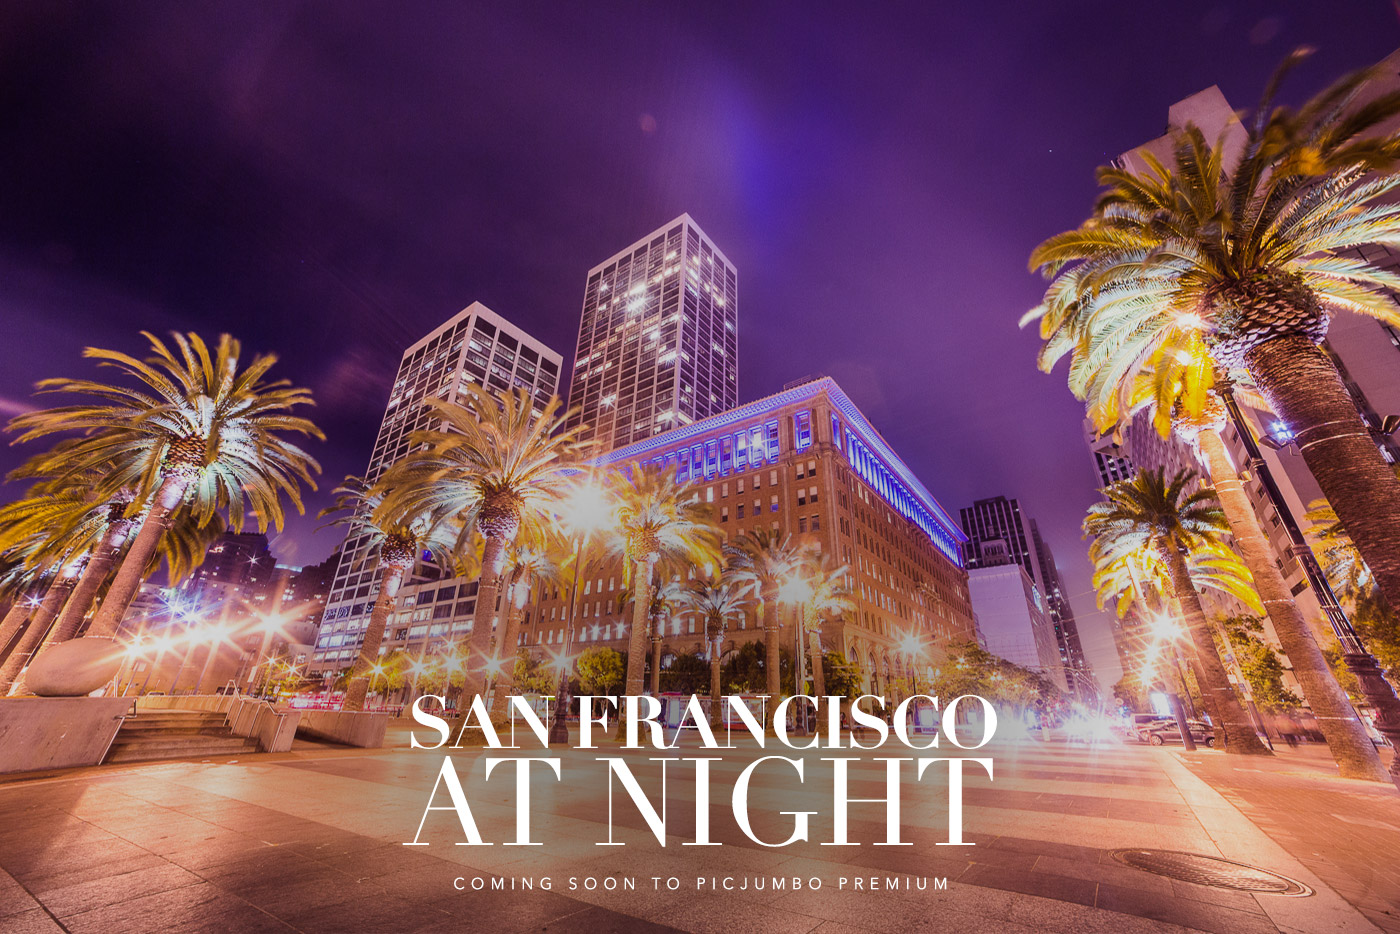 san-francisco-at-night-coming-soon